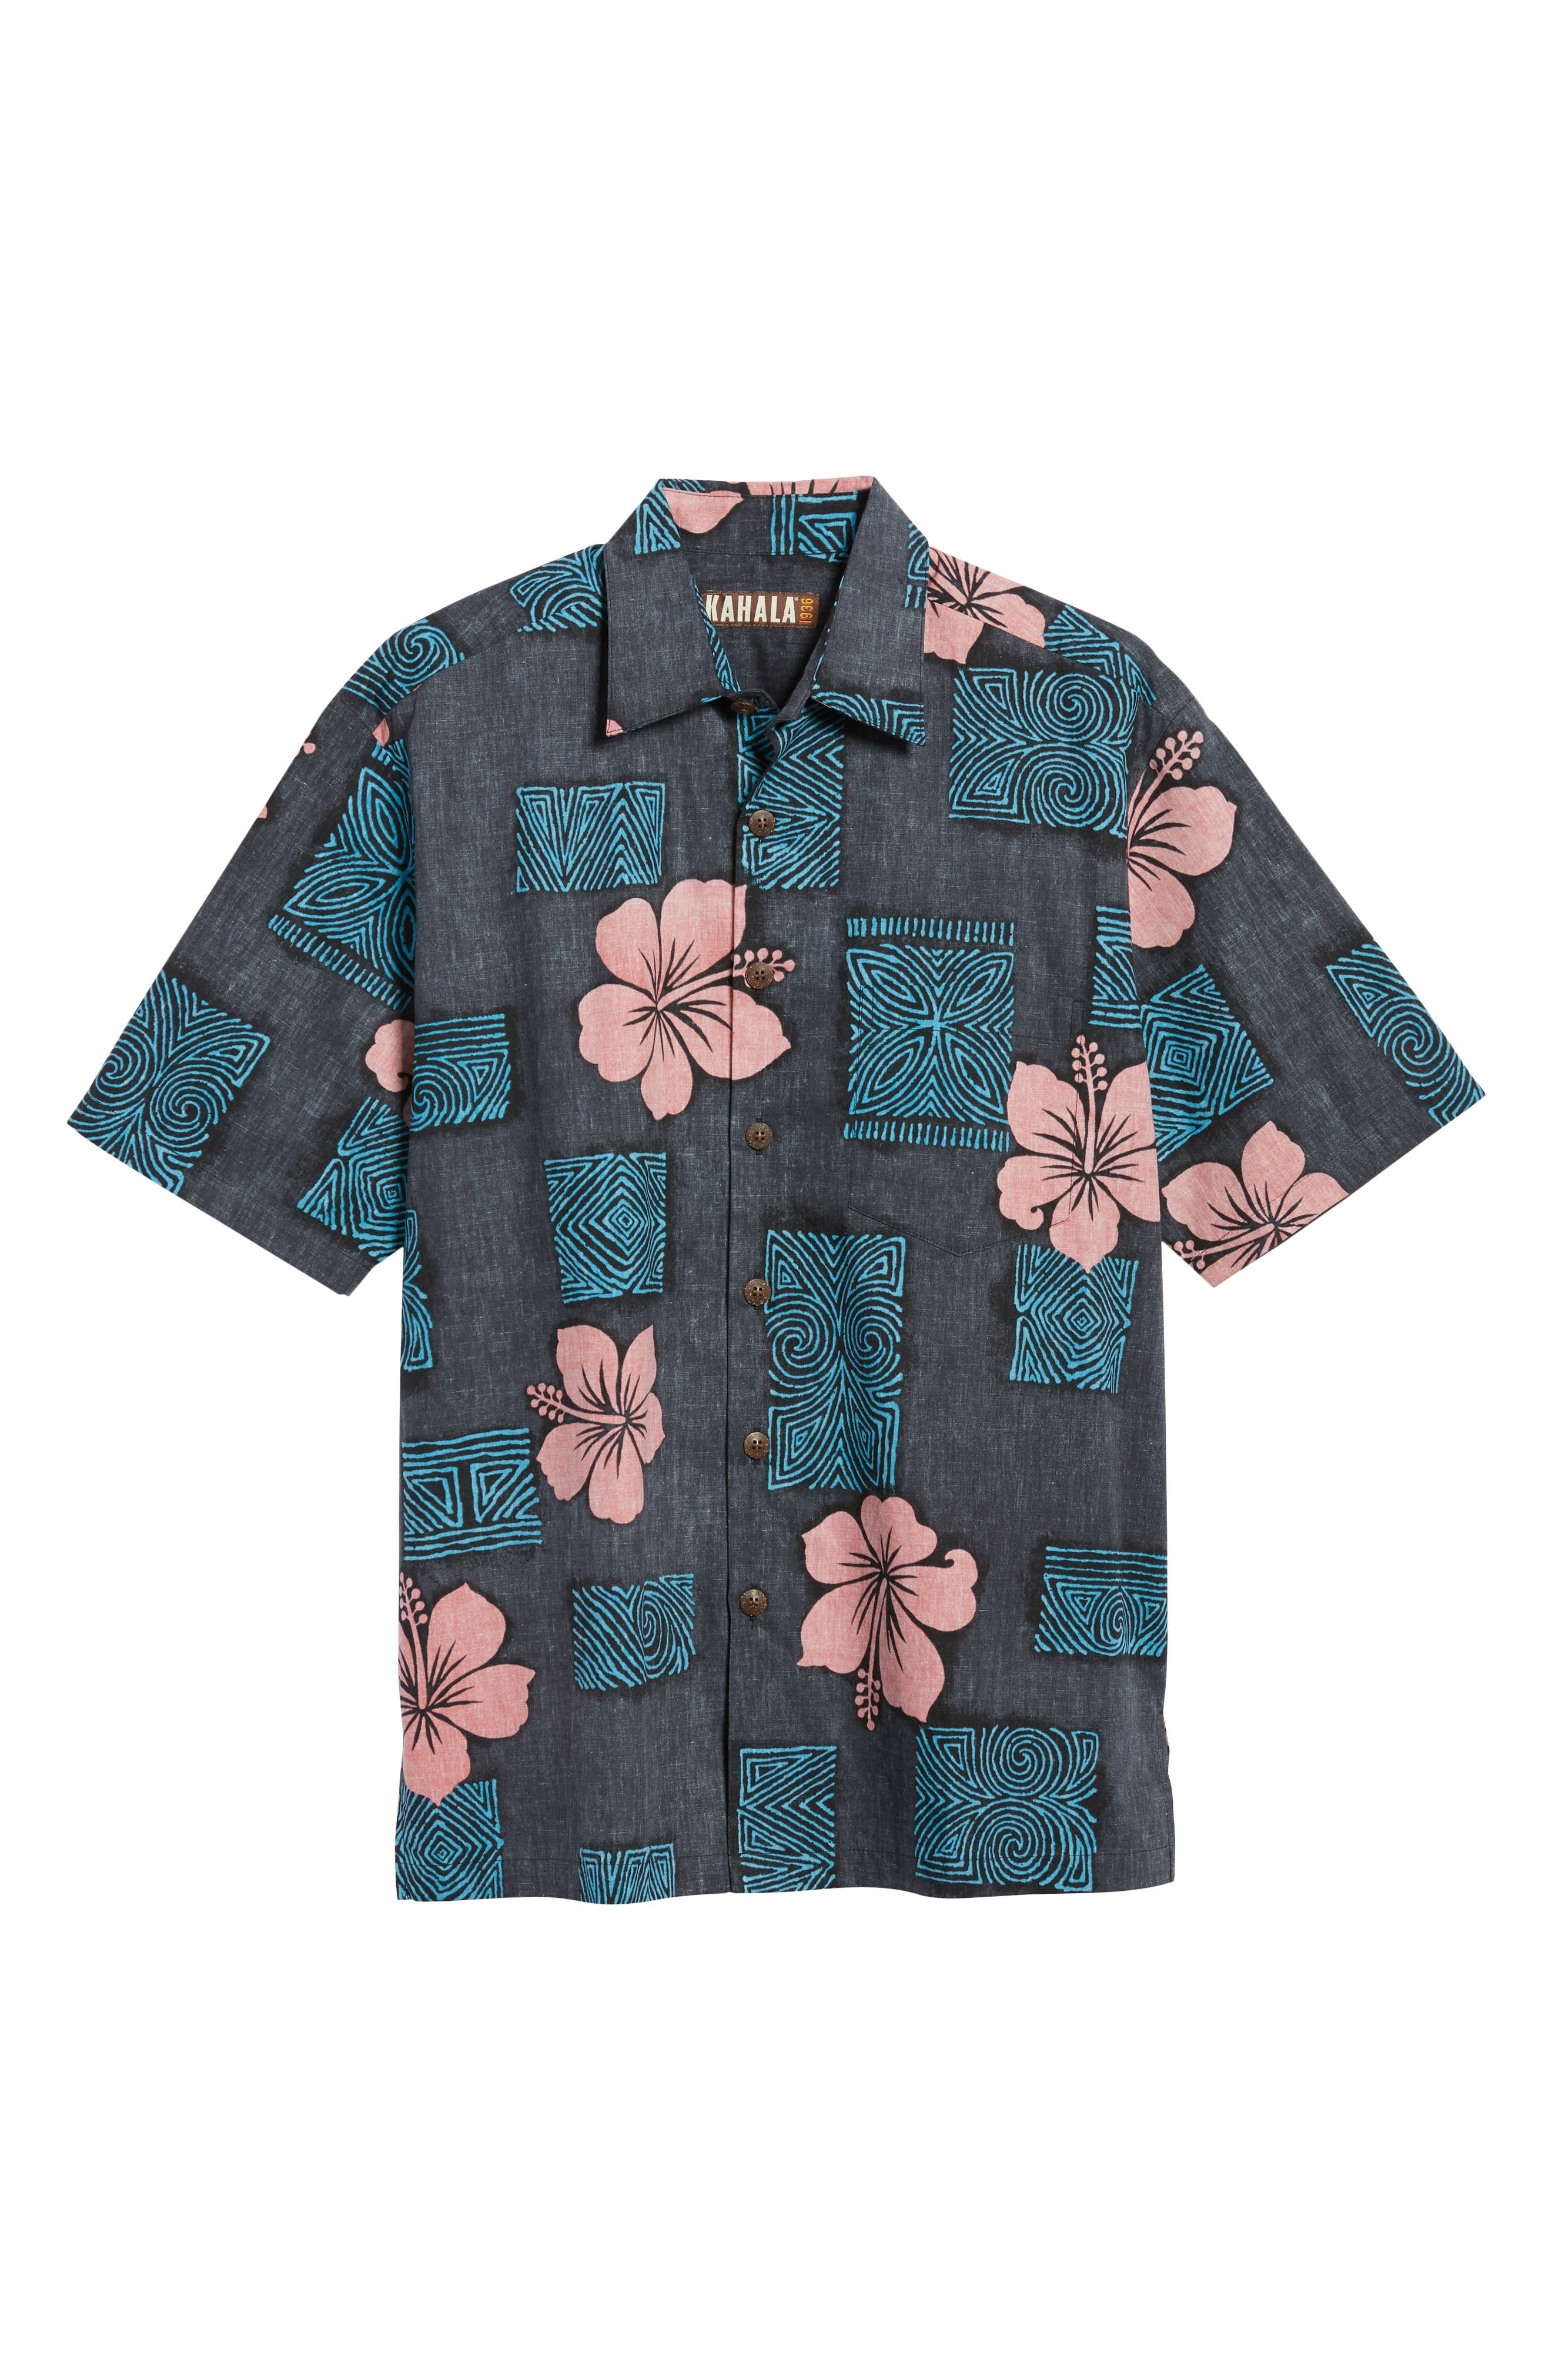 Tiki Room Standard Fit Camp Shirt,                             Alternate thumbnail 6, color,                             001